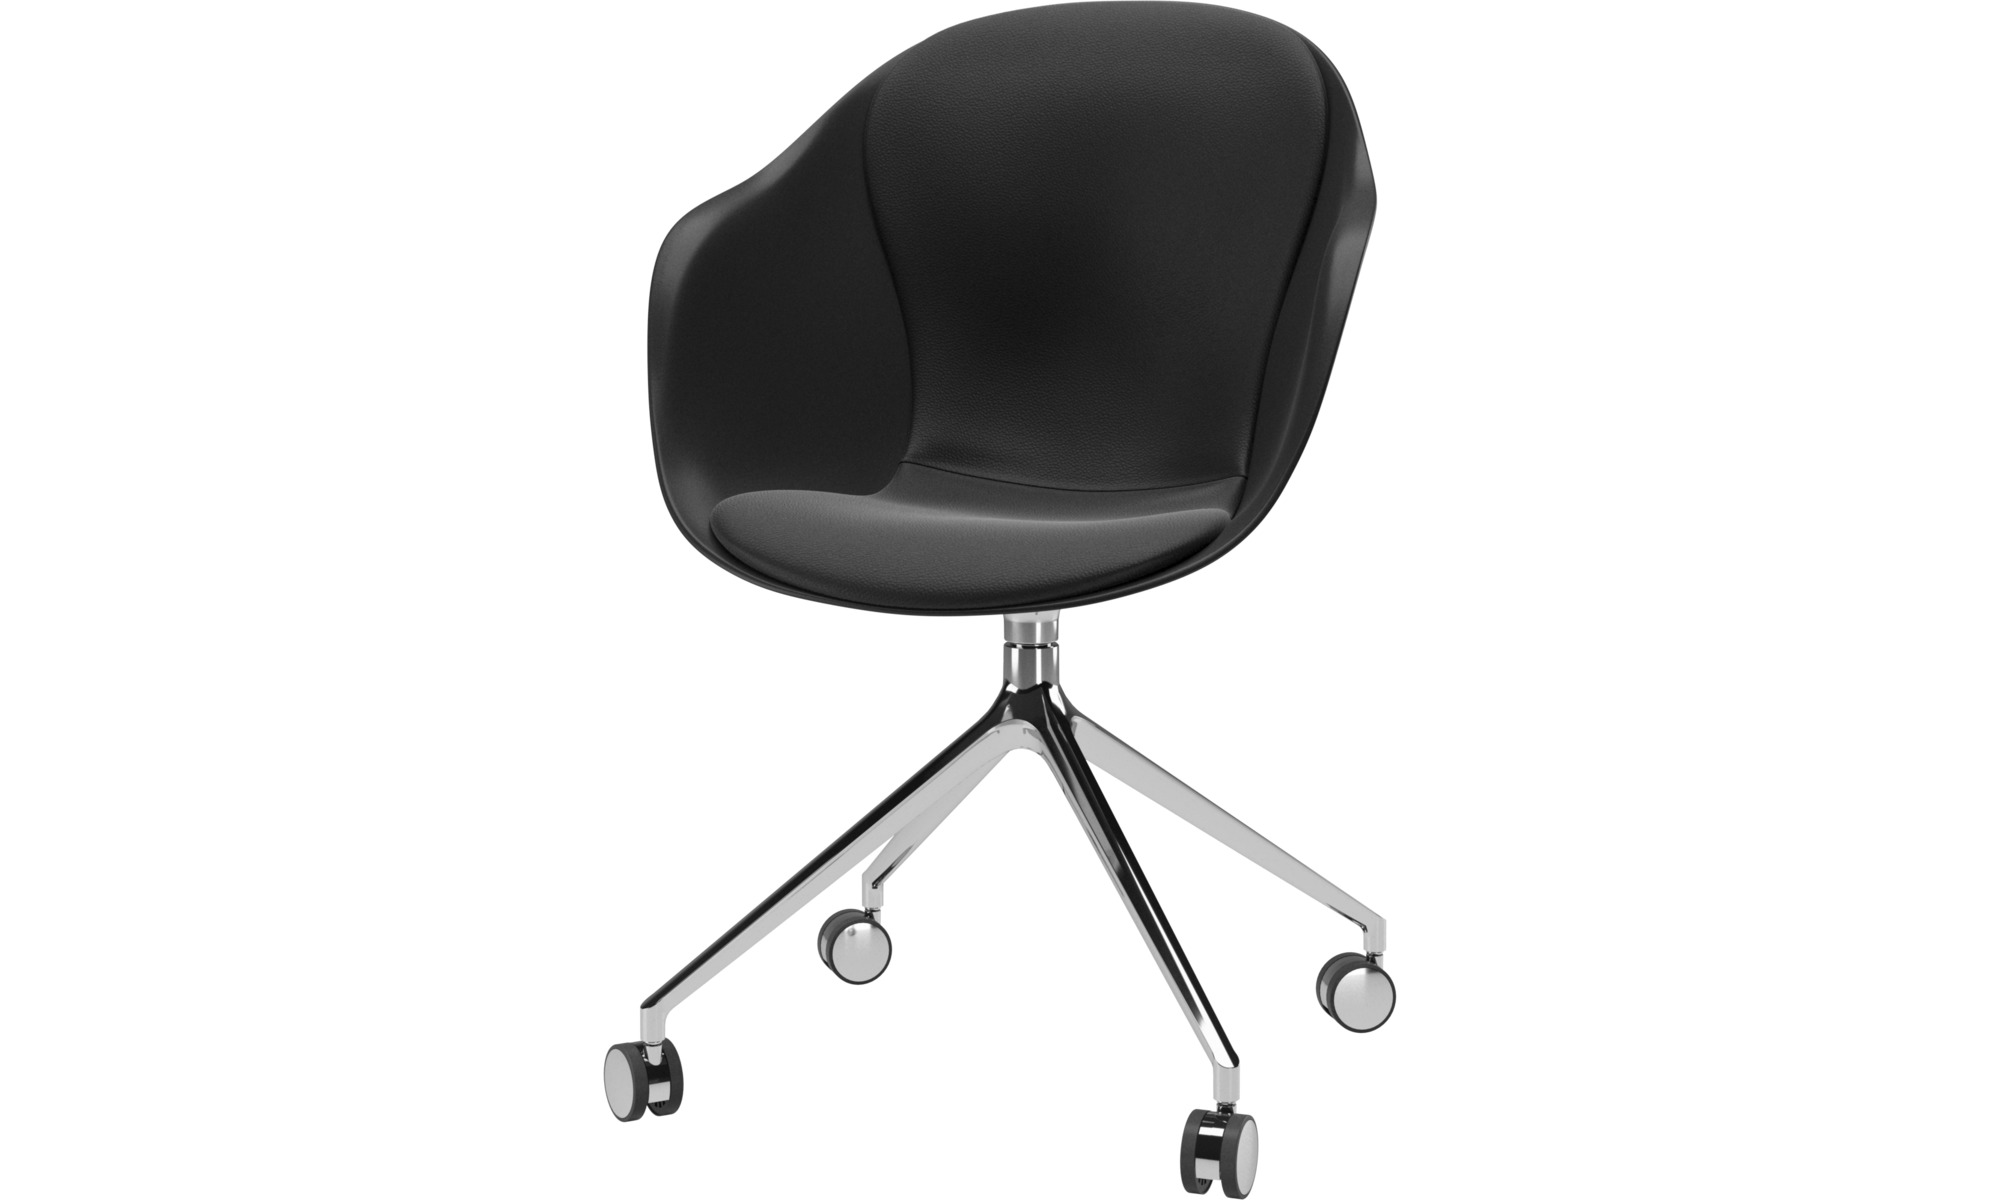 Home office chairs - Adelaide chair with swivel function and wheels - Black - Leather